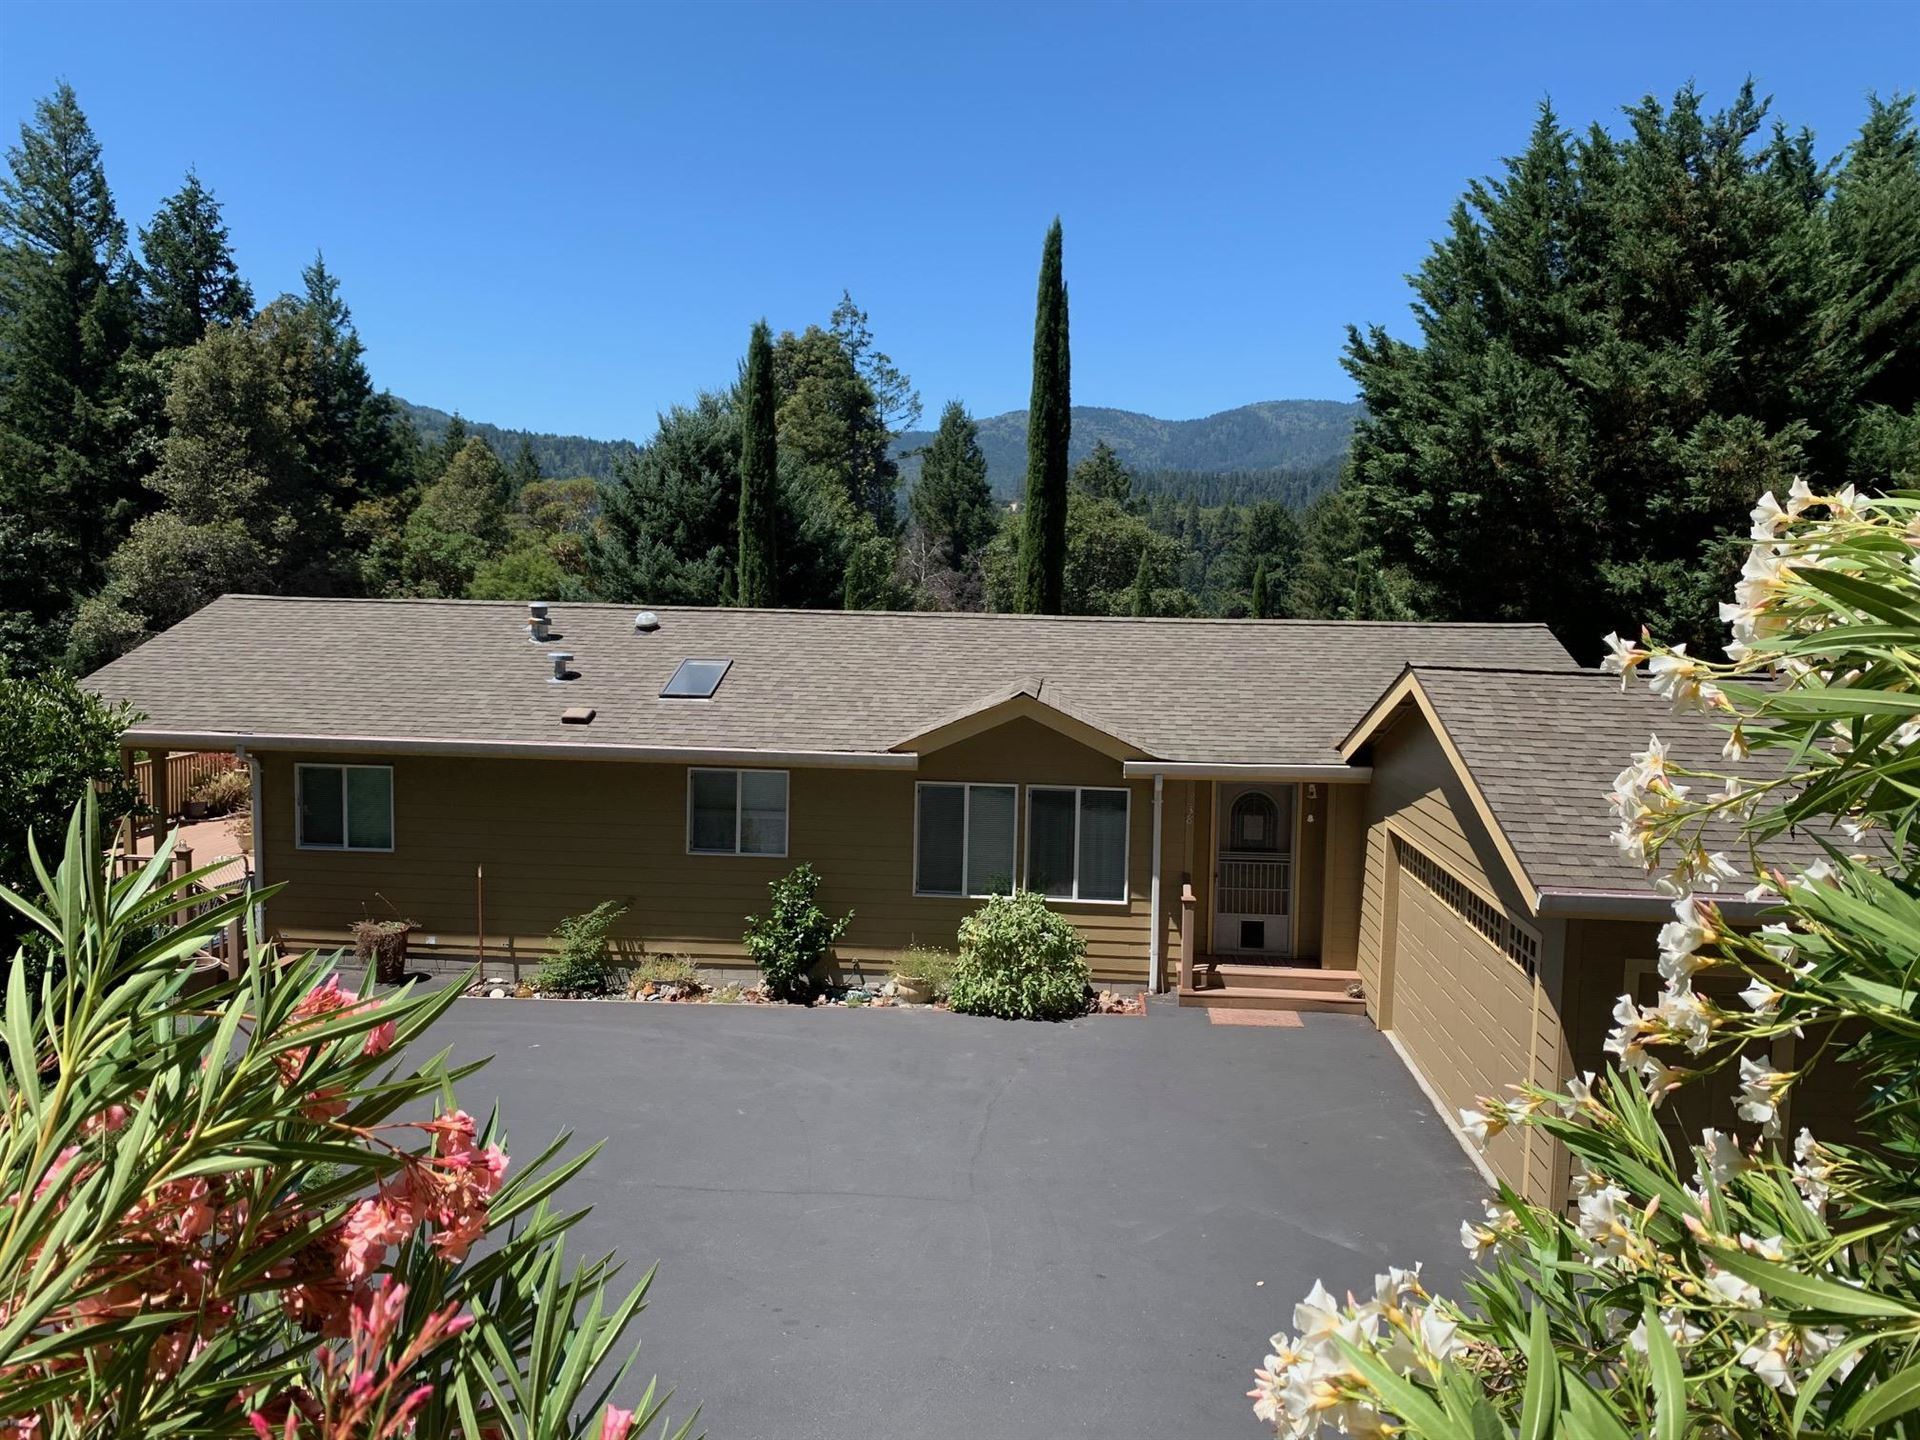 238 Hillcrest Way, Willow Creek, CA 95573 - MLS#: 256943